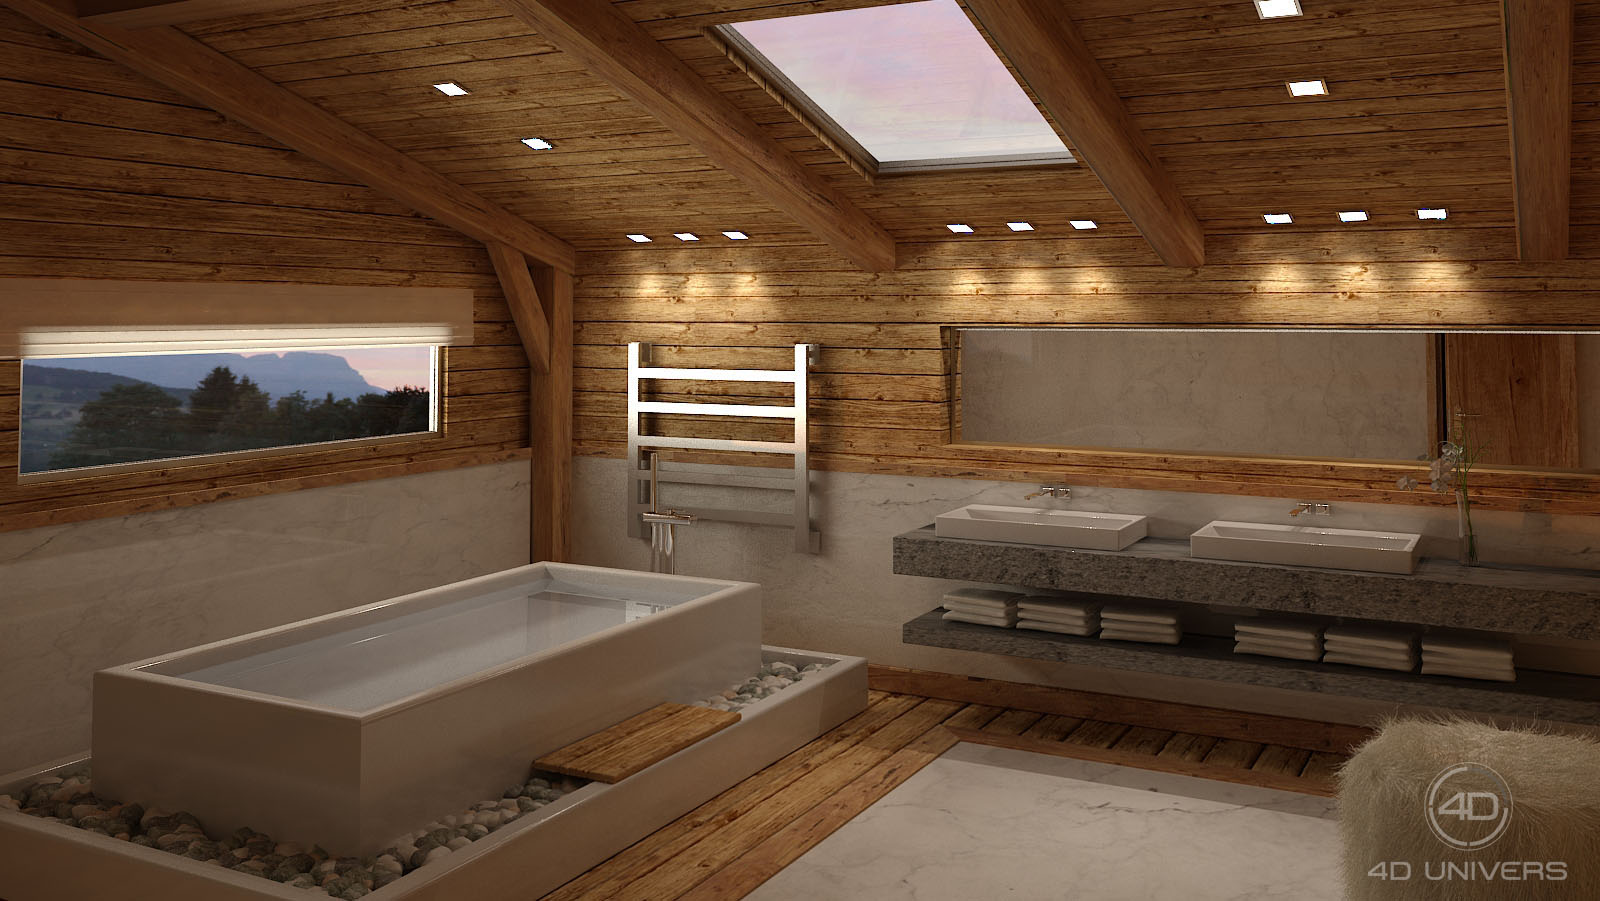 Architecte 4d univers studio animation 3d for Architecte interieur salle de bain